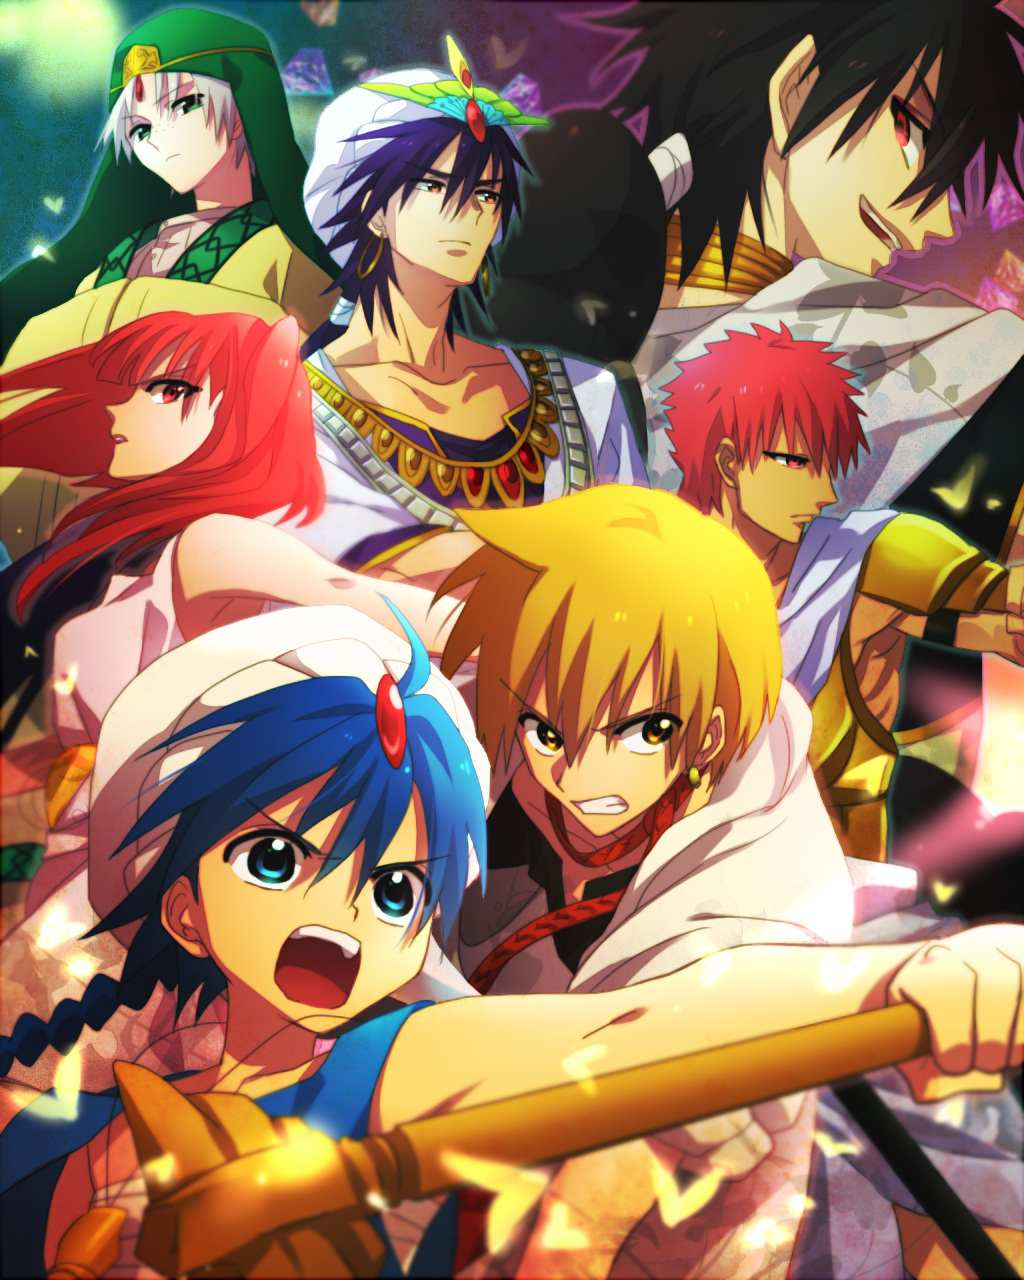 magi the labyrinth of magic anime voice over wiki. Black Bedroom Furniture Sets. Home Design Ideas